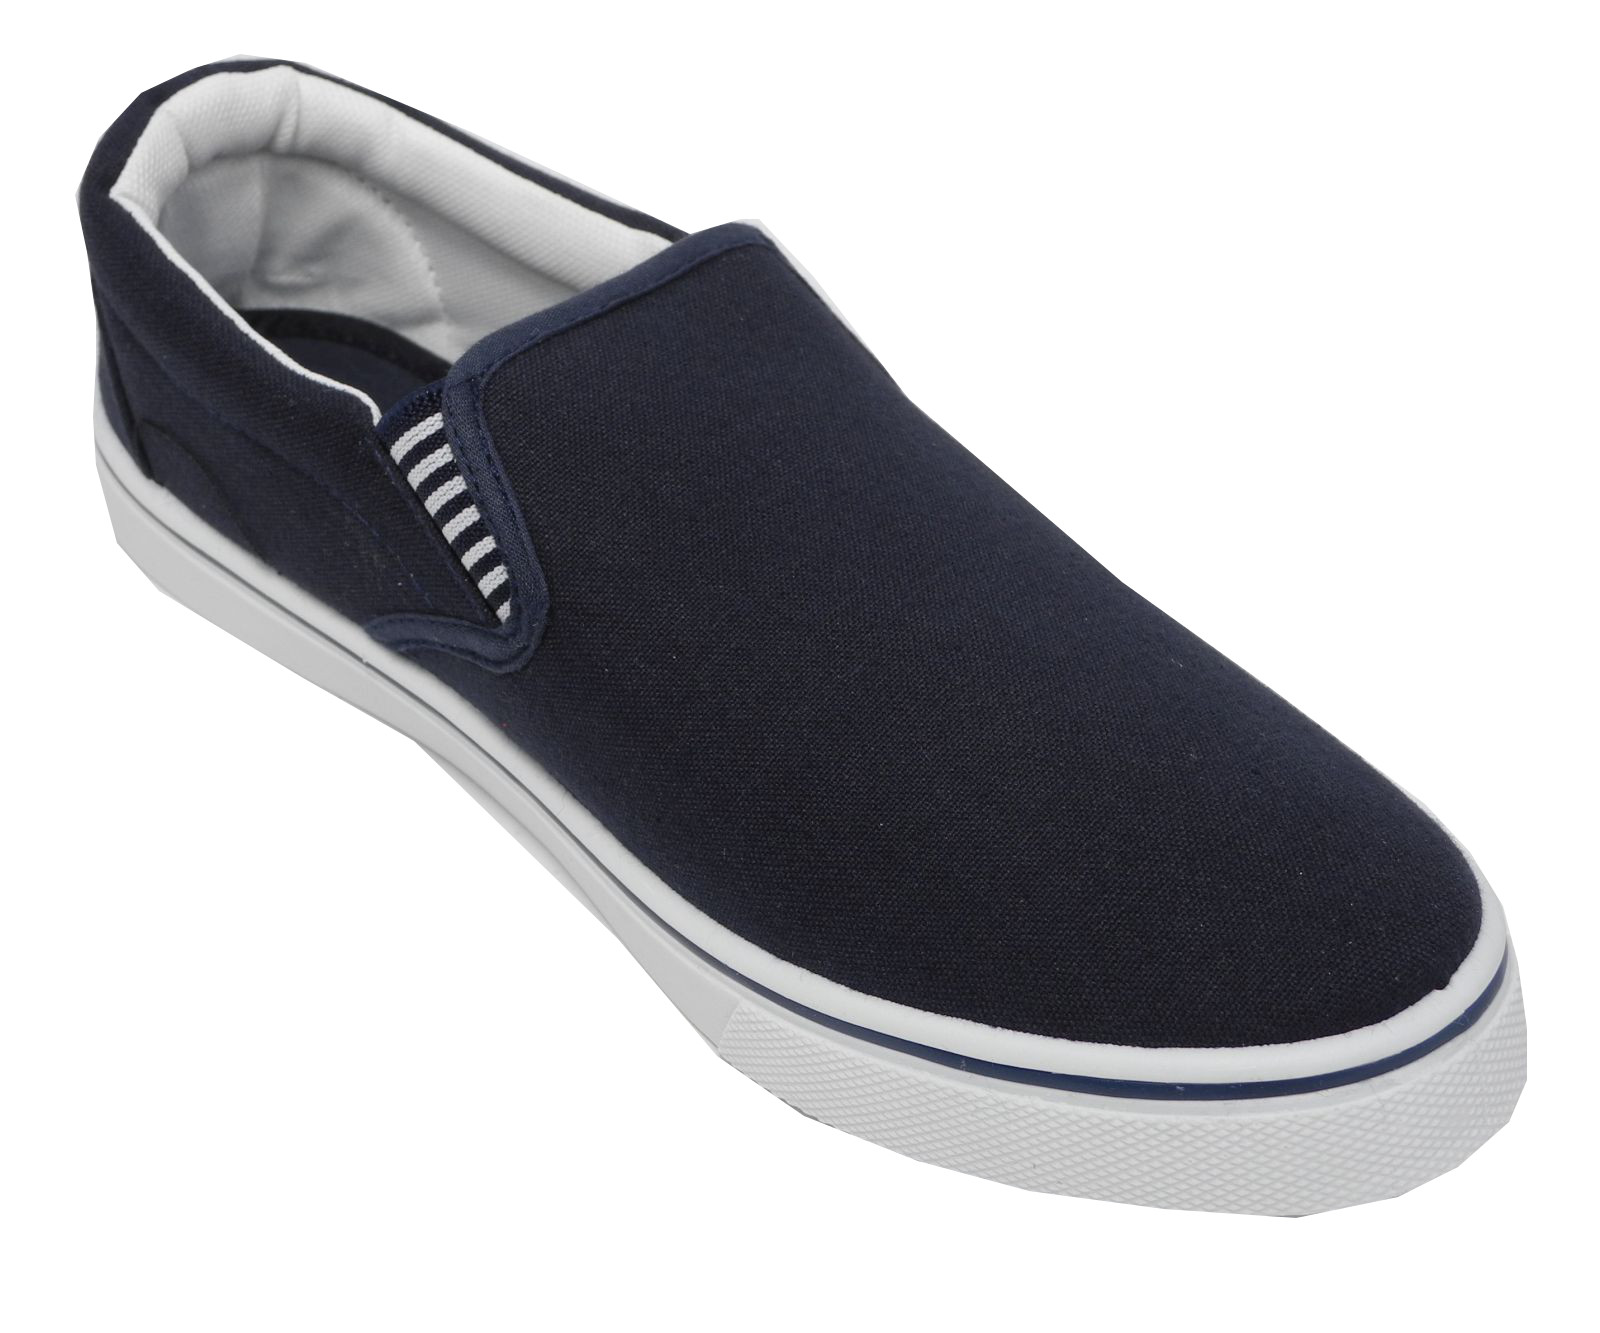 Blue Canvas Slip-on Shoes Sale: Save Up to 40% Off! Shop gusajigadexe.cf's huge selection of Blue Canvas Slip-on Shoes - Over 70 styles available. FREE Shipping & Exchanges, and a .